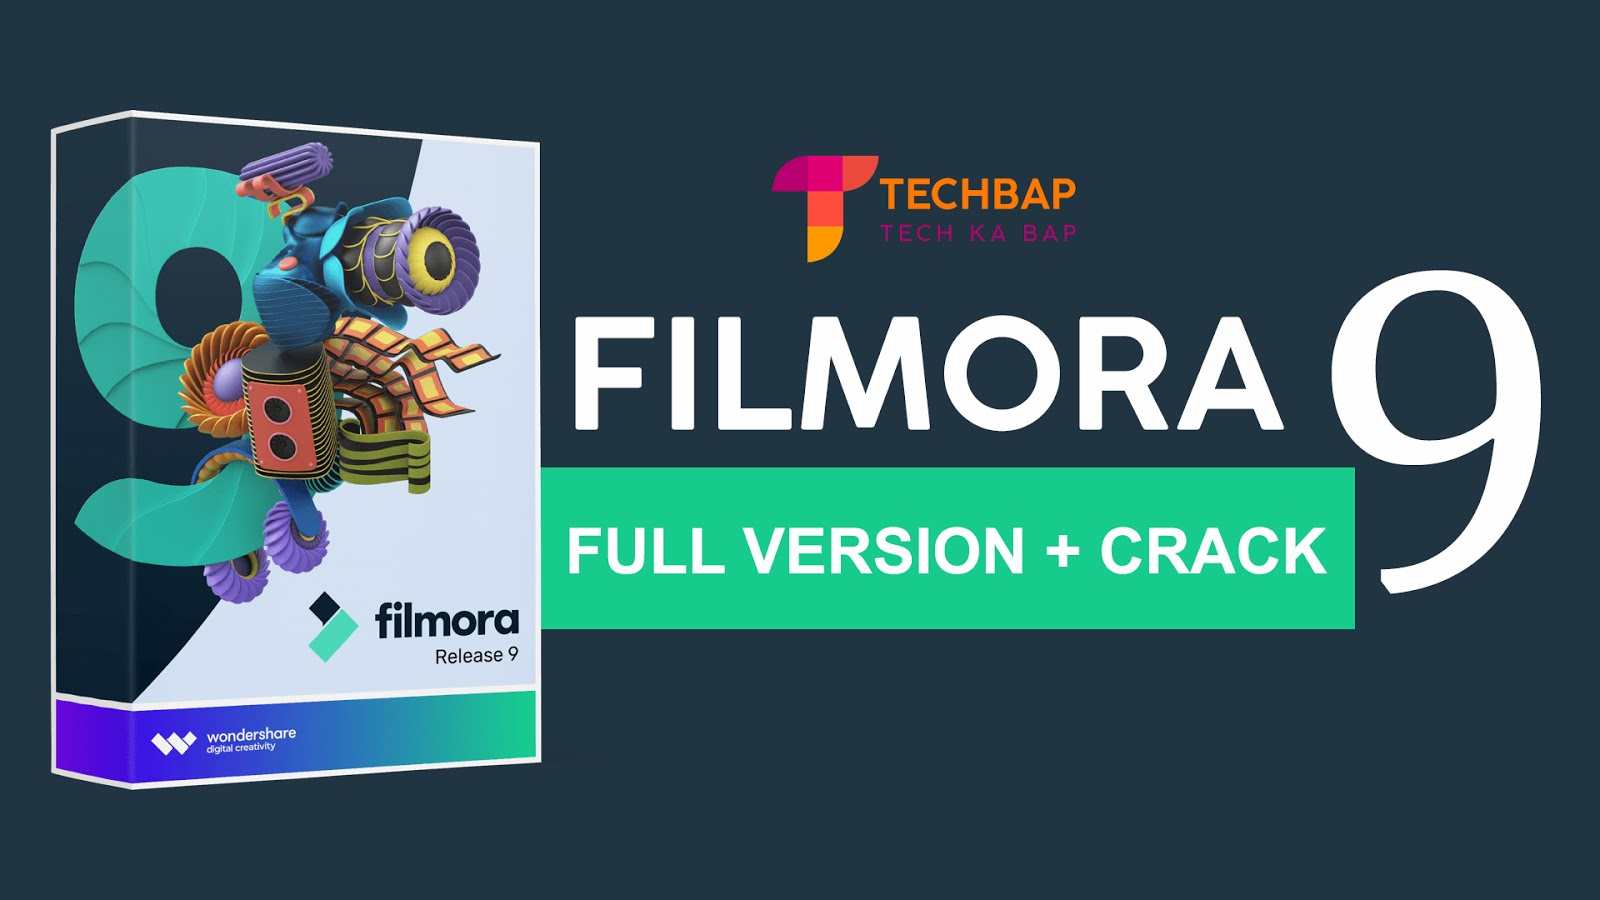 filmora 9 full version free download with crack